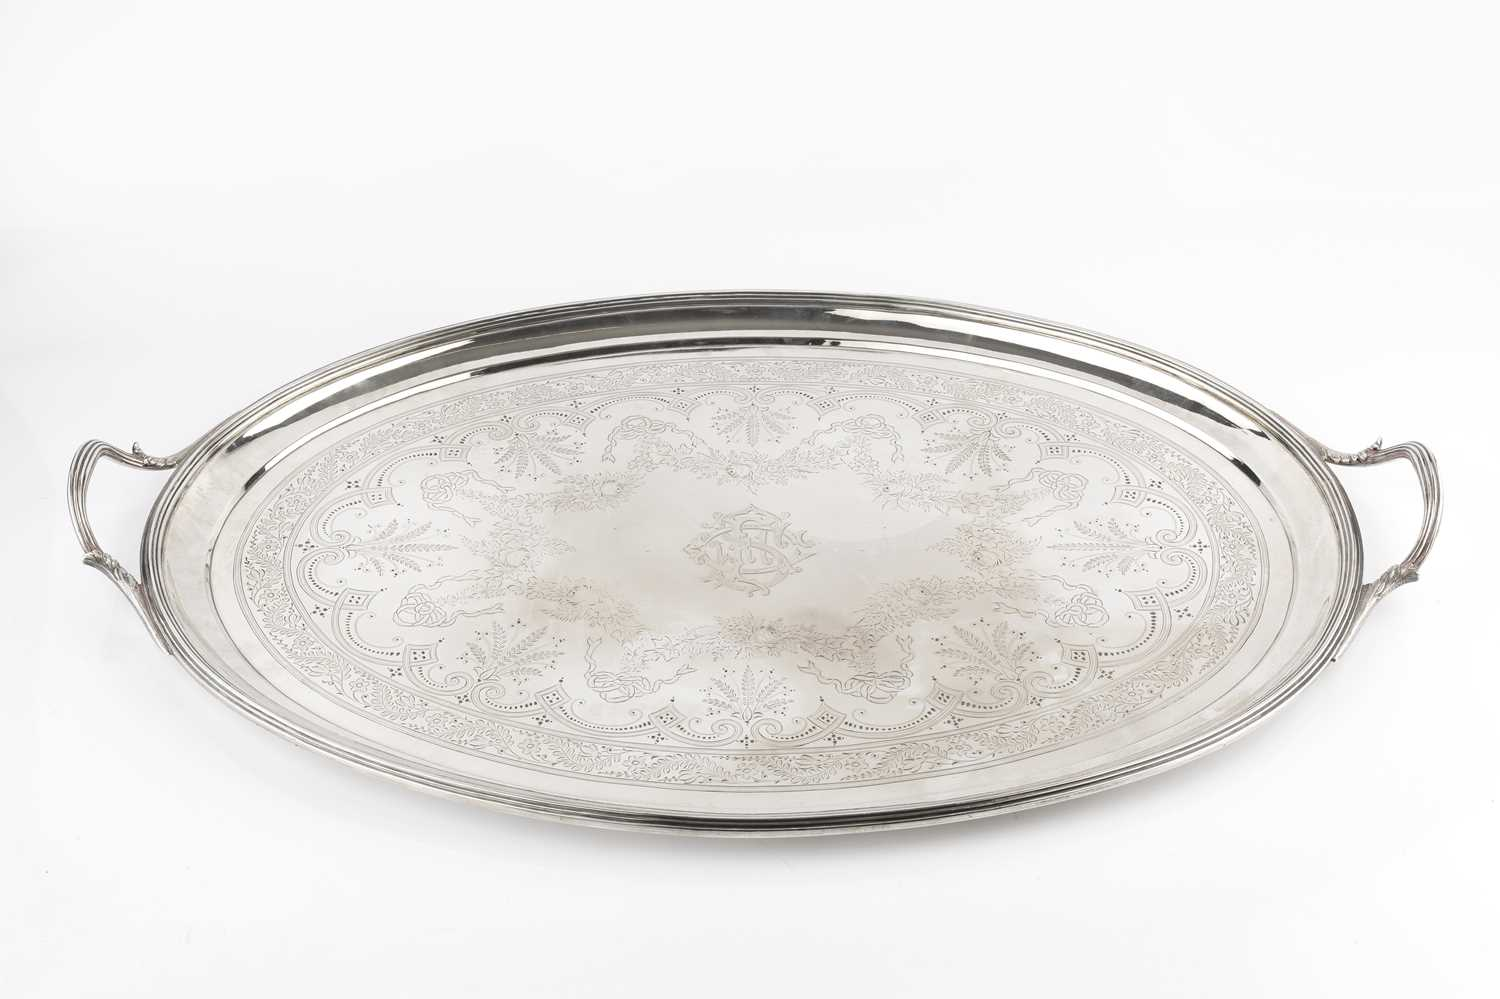 A late Victorian silver twin handled oval tea tray, with reeded border and handles, engraved with